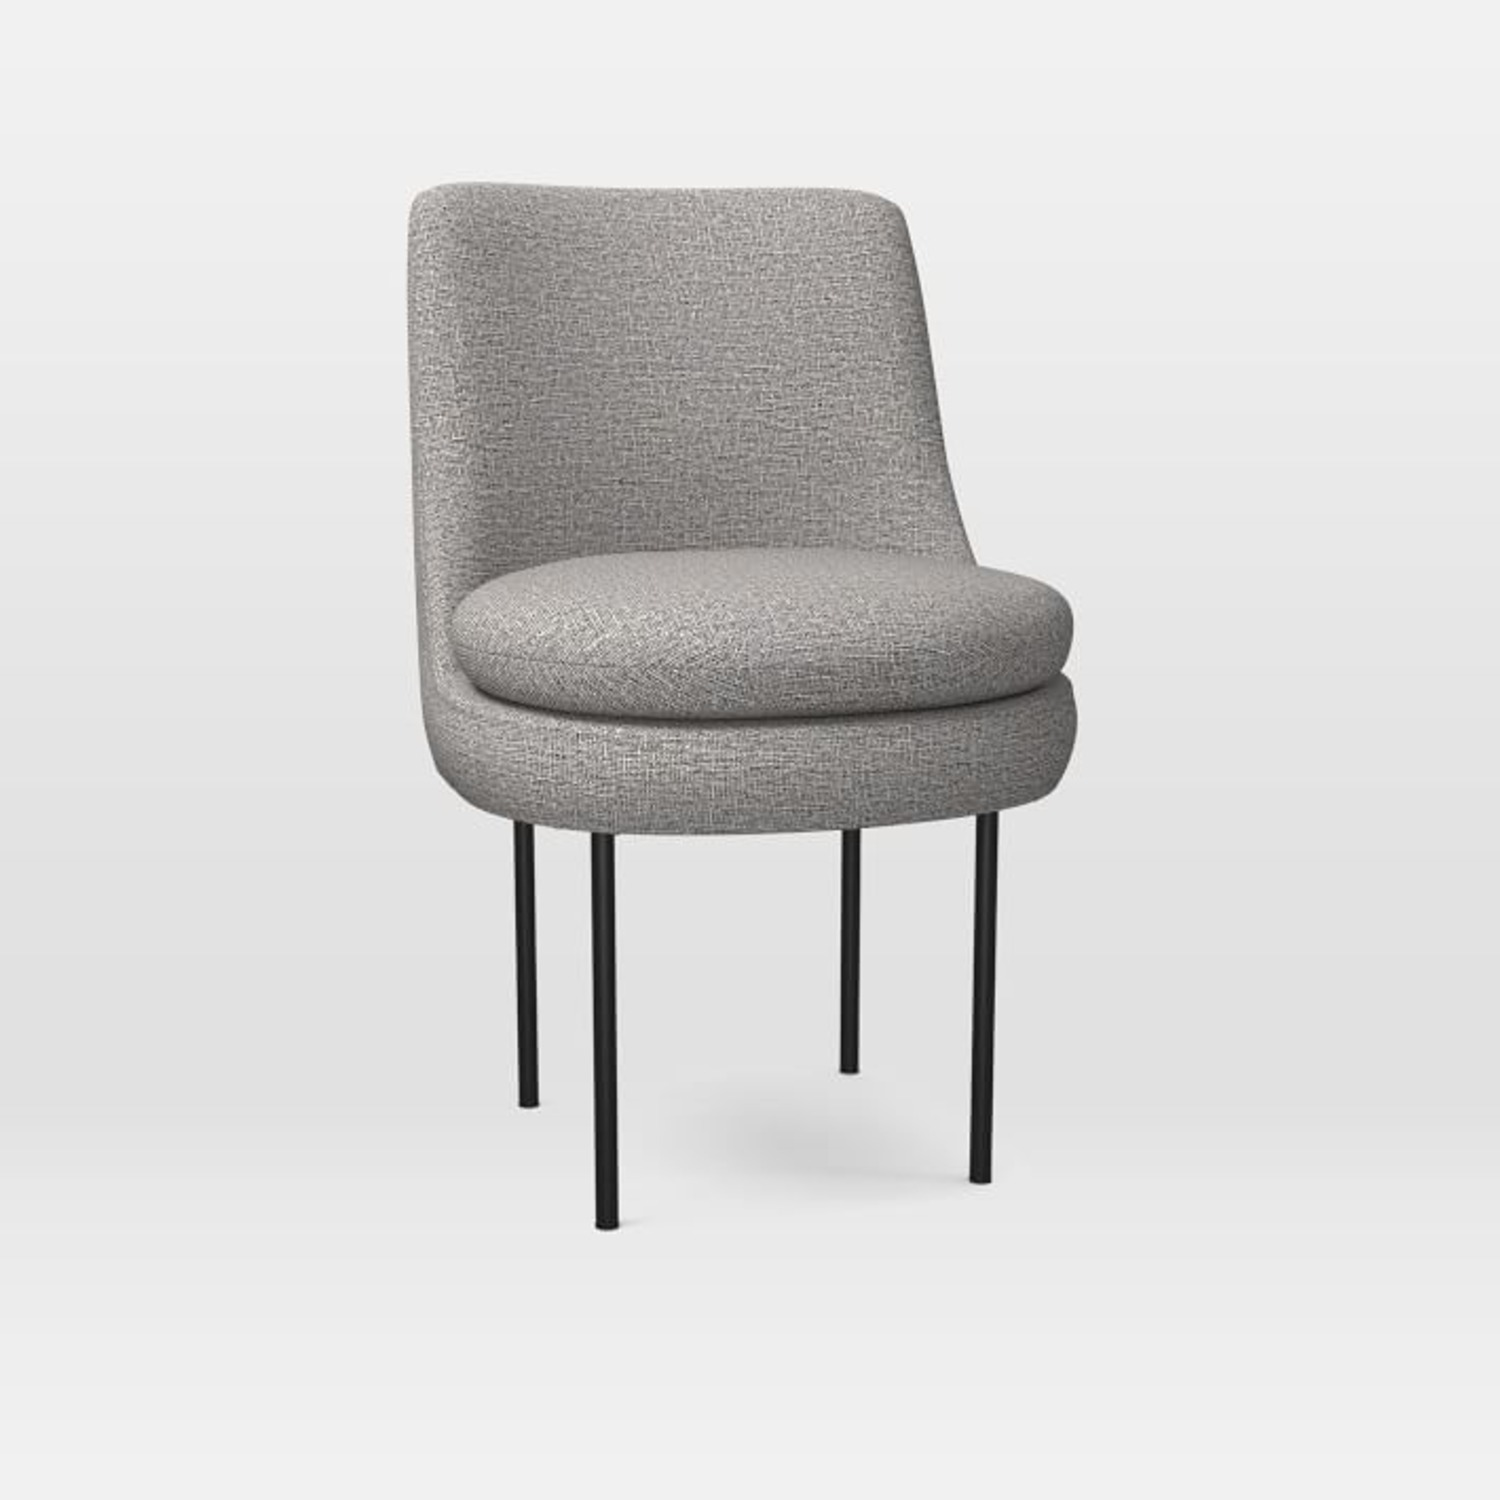 West Elm Modern Curved Upholstered Dining Chair - image-2